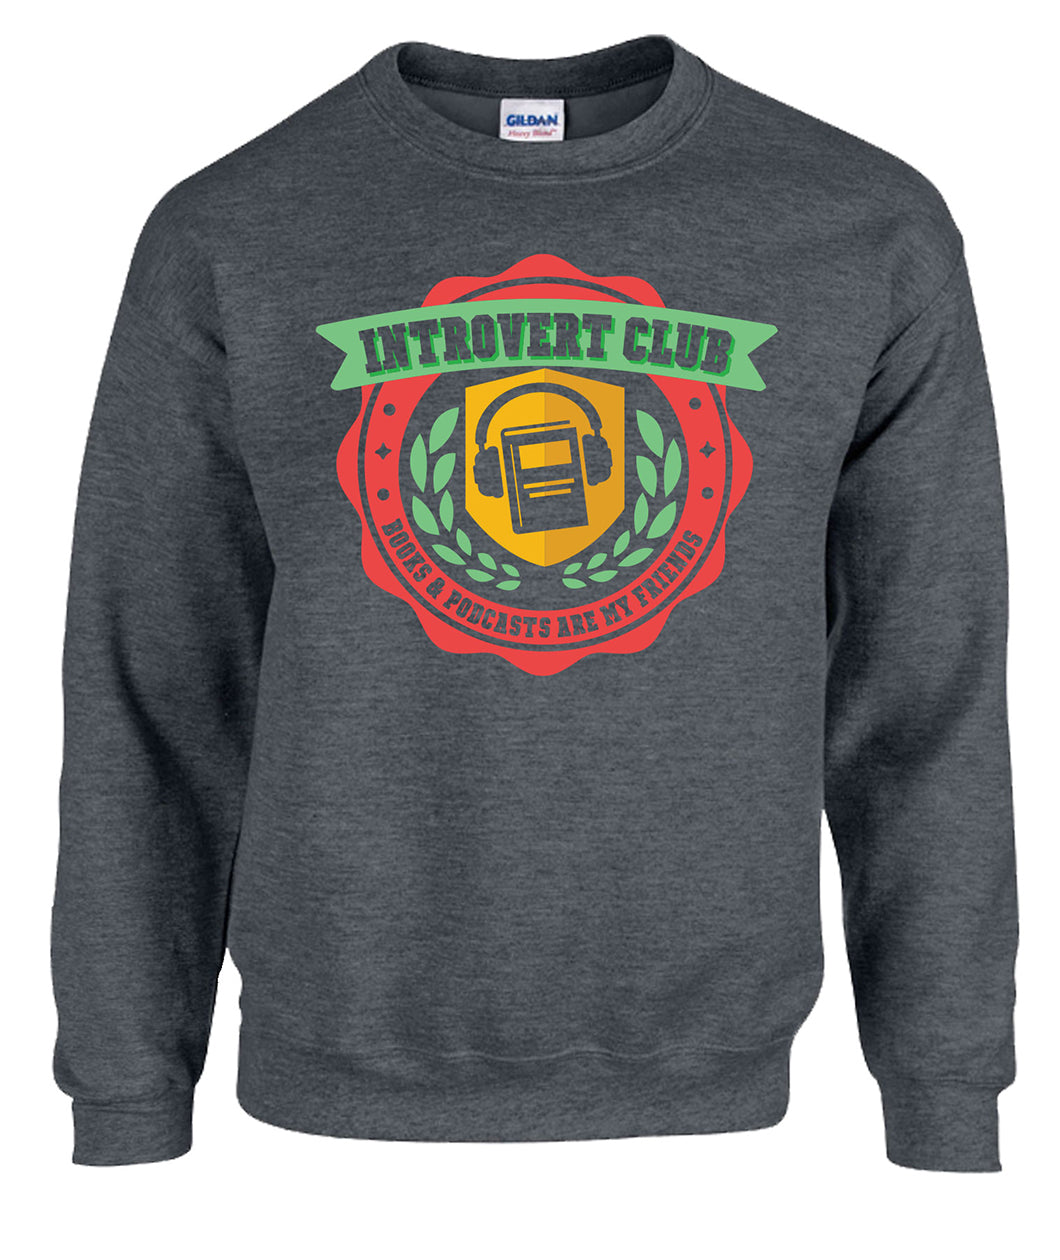 Introvert Club Crewneck Sweatshirt